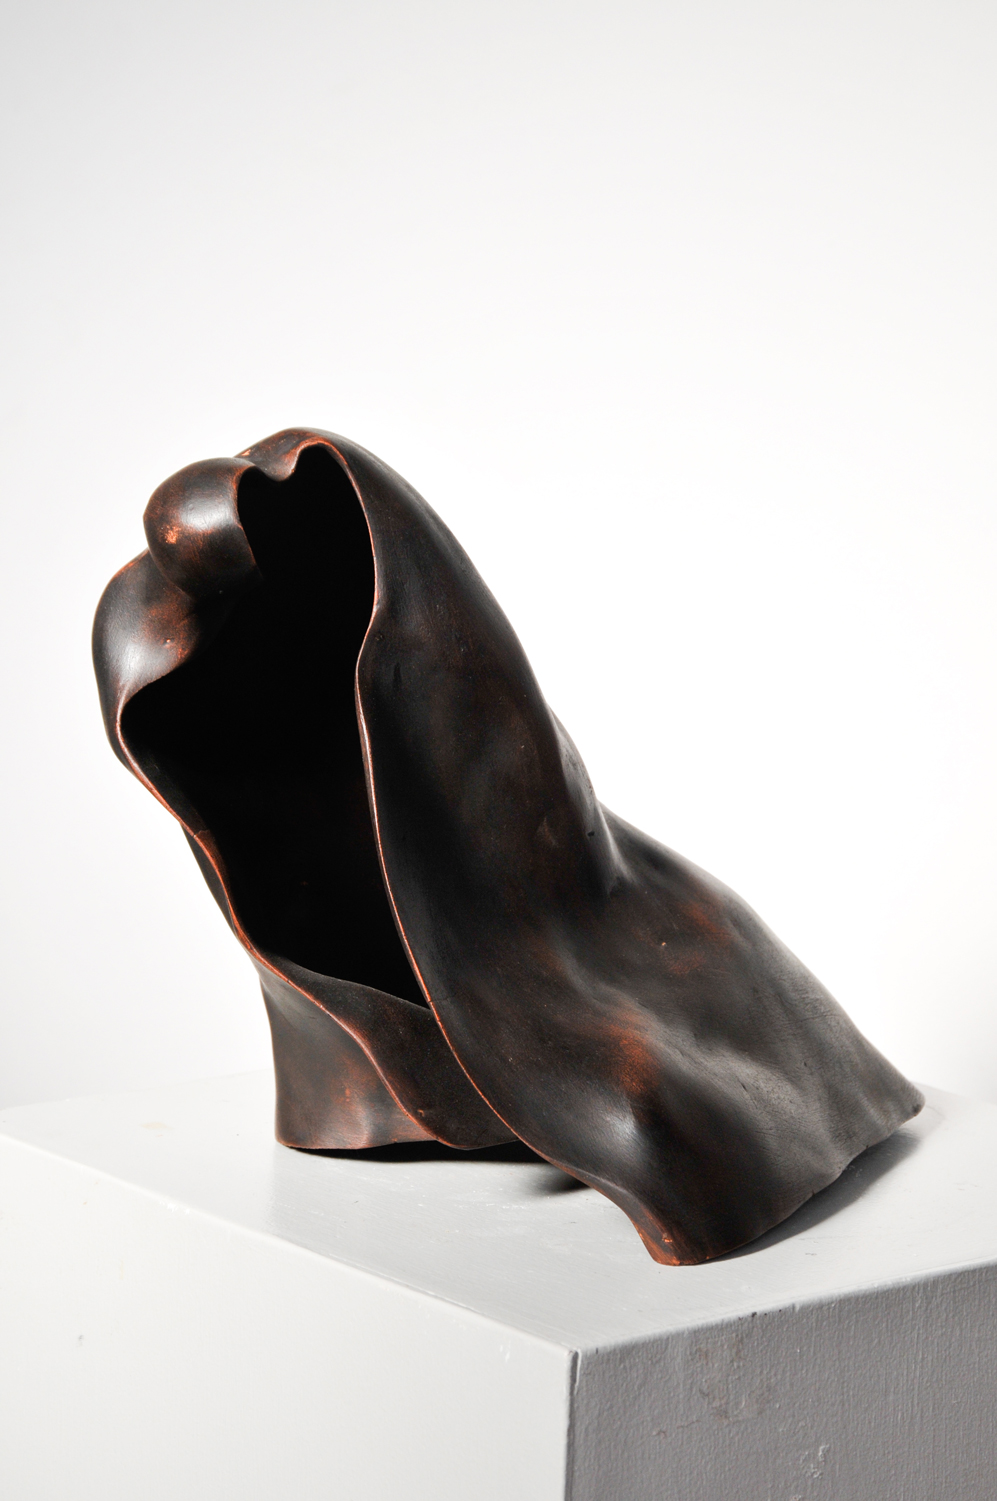 Bihind the Chador  20.22.25 cm    Bronze     She hides a history, a context, a song that dies before it is sung.